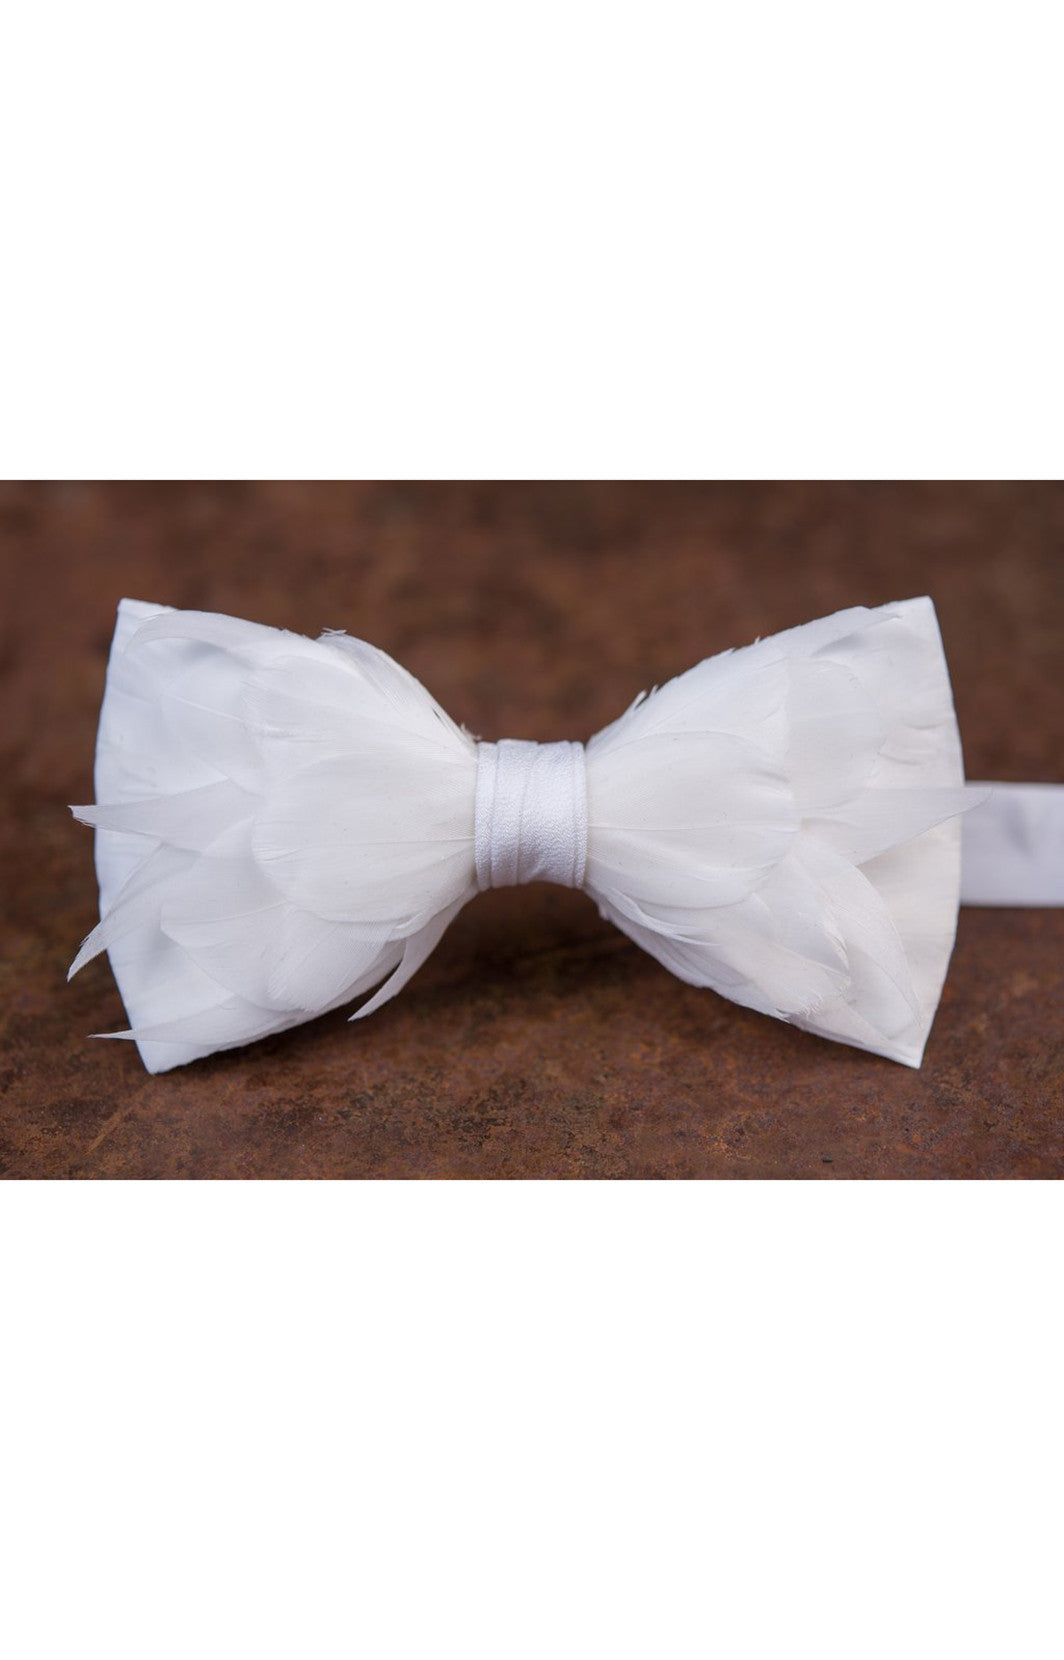 white bowtie, white bow tie, feather bow tie, brackish bow tie, goose feathers, wedding bow tie, dressy, mens accessories